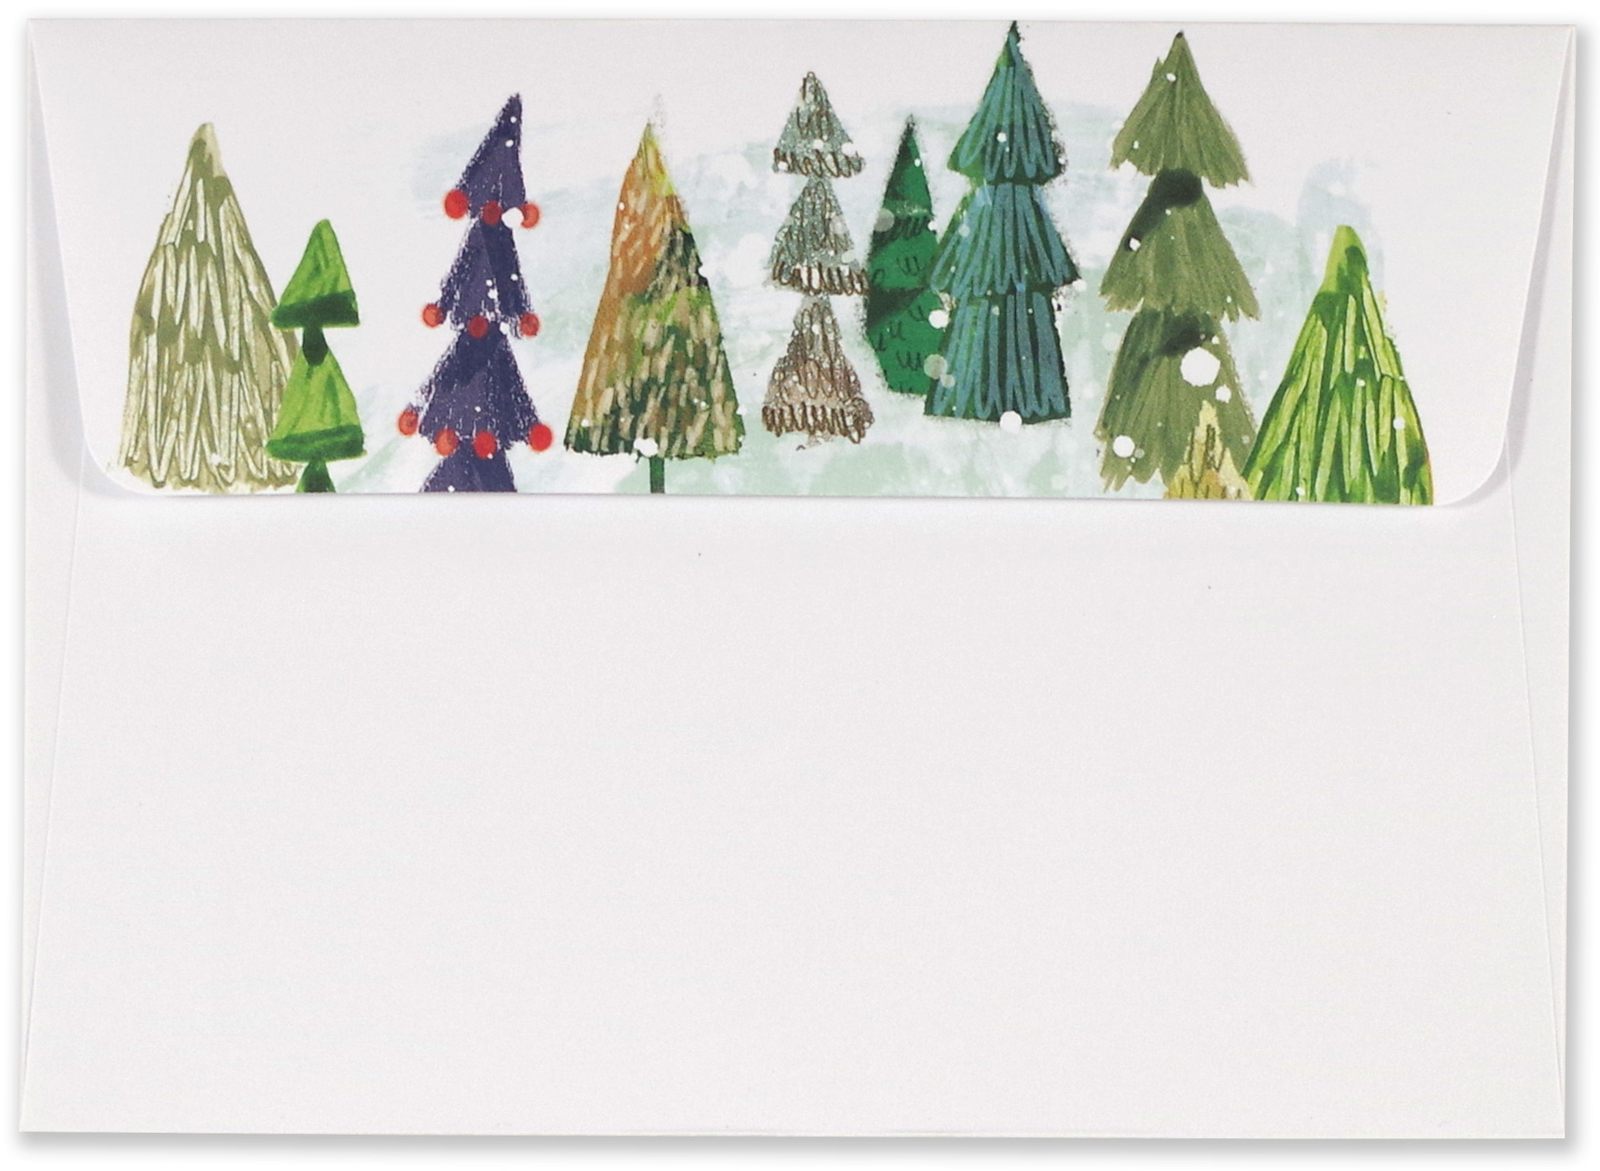 Buy Peter Pauper: Boxed Christmas Cards - Festival of Trees (20 Pack ...